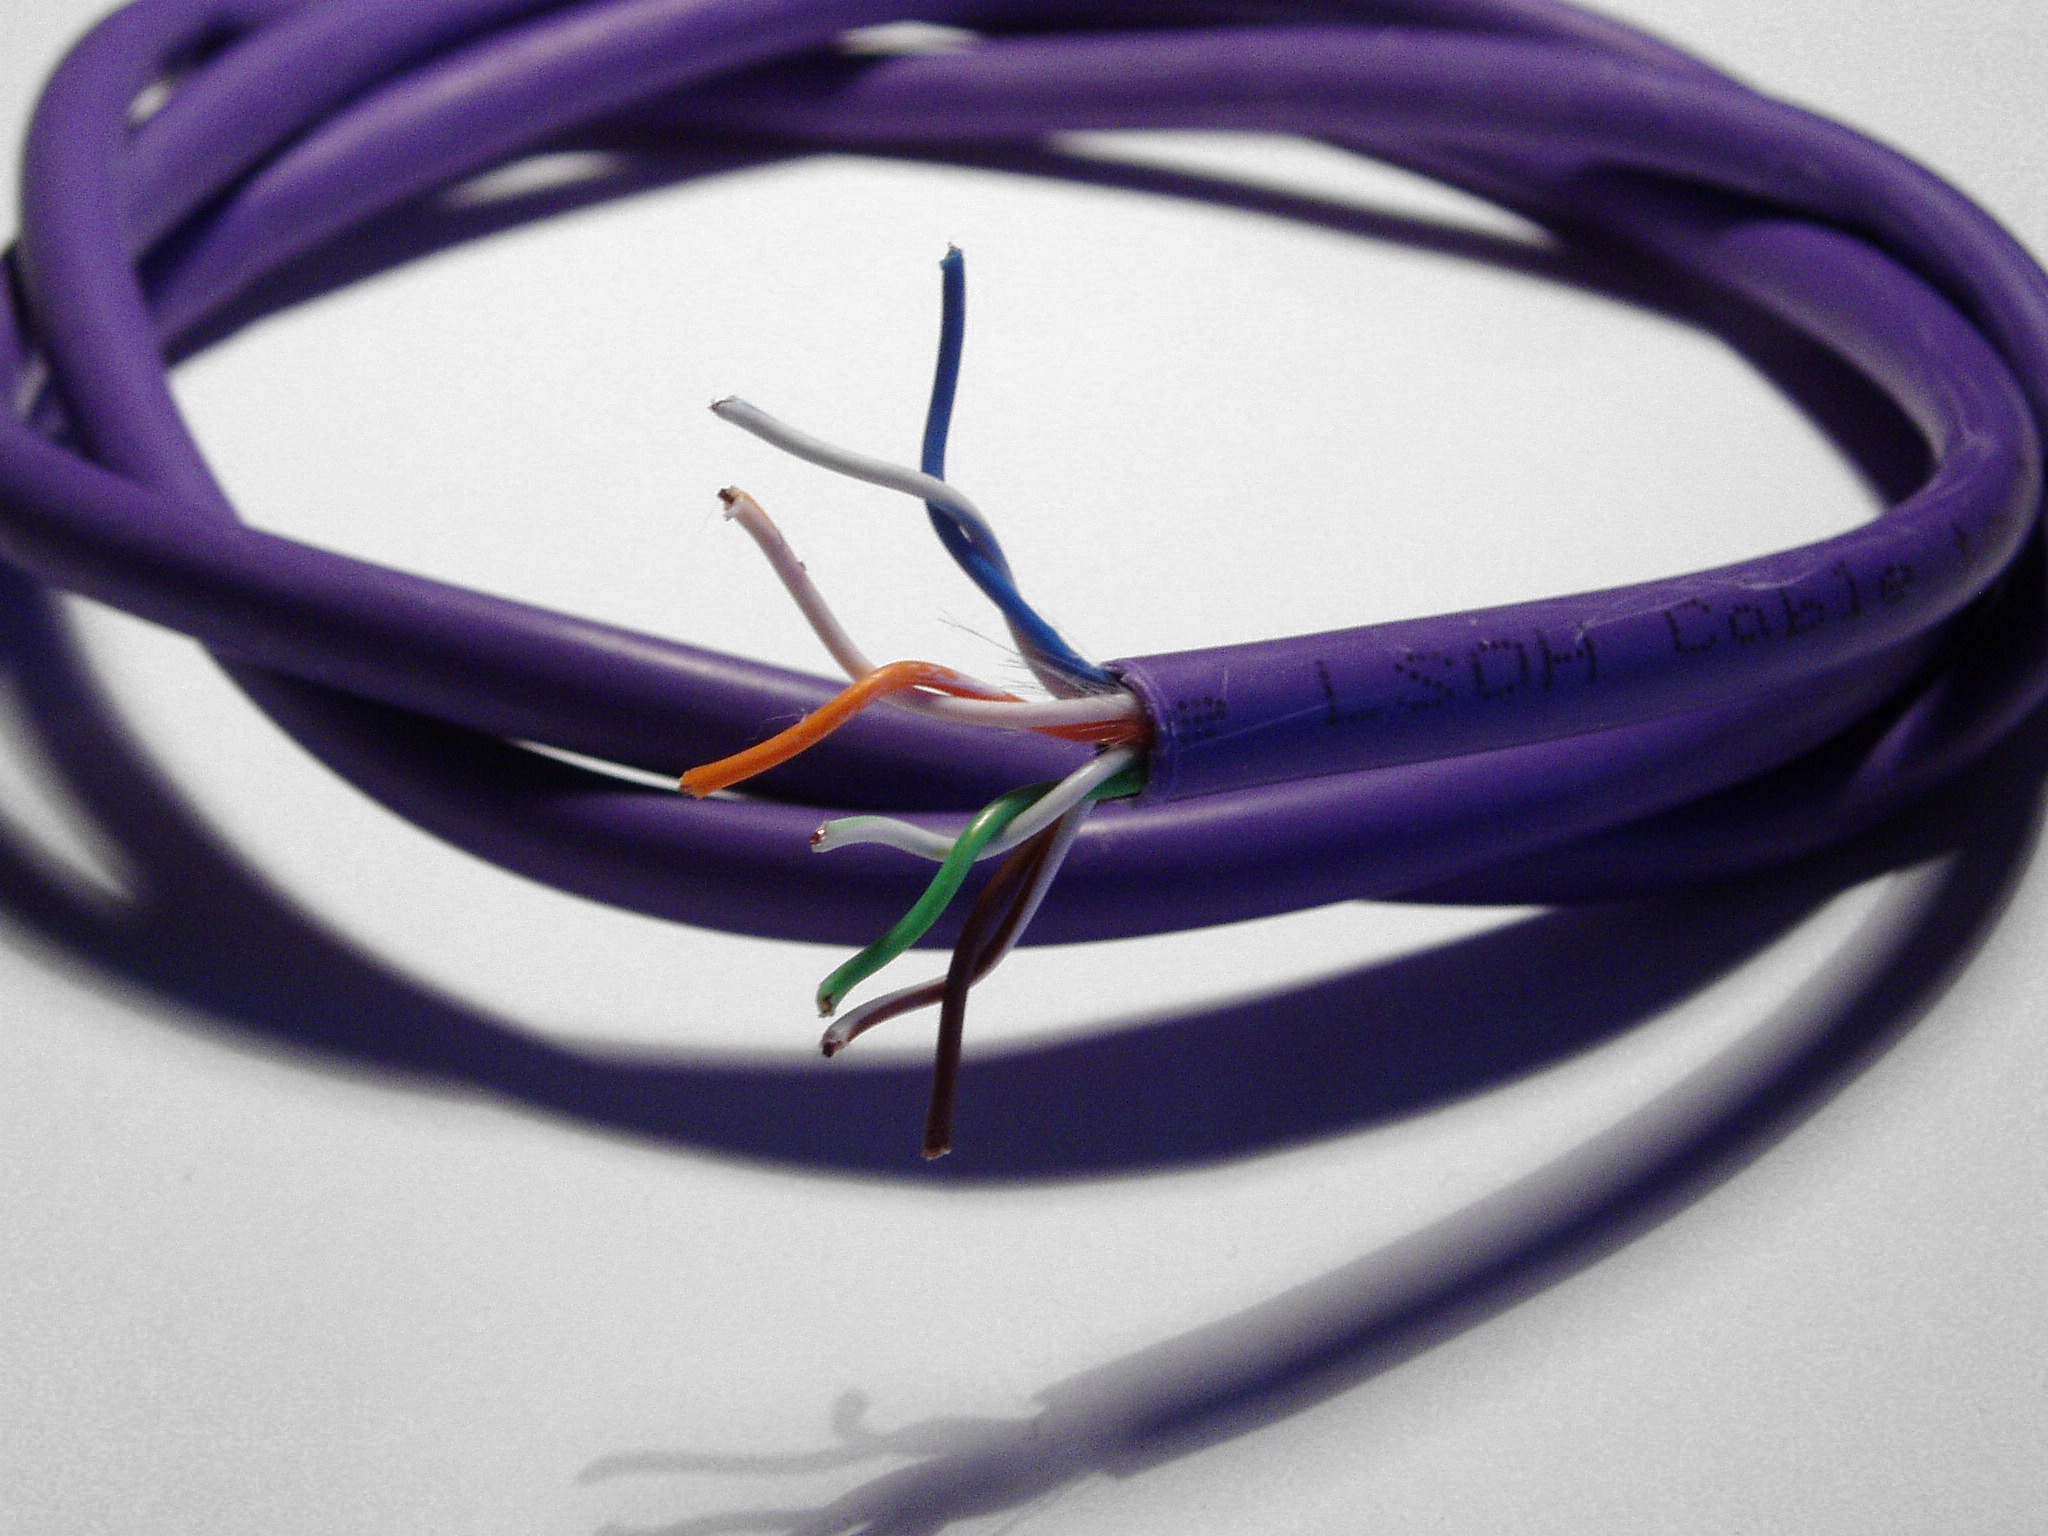 Category 5 Cable Wikipedia Wiring Diagram To Rj45 Connector Cat 6